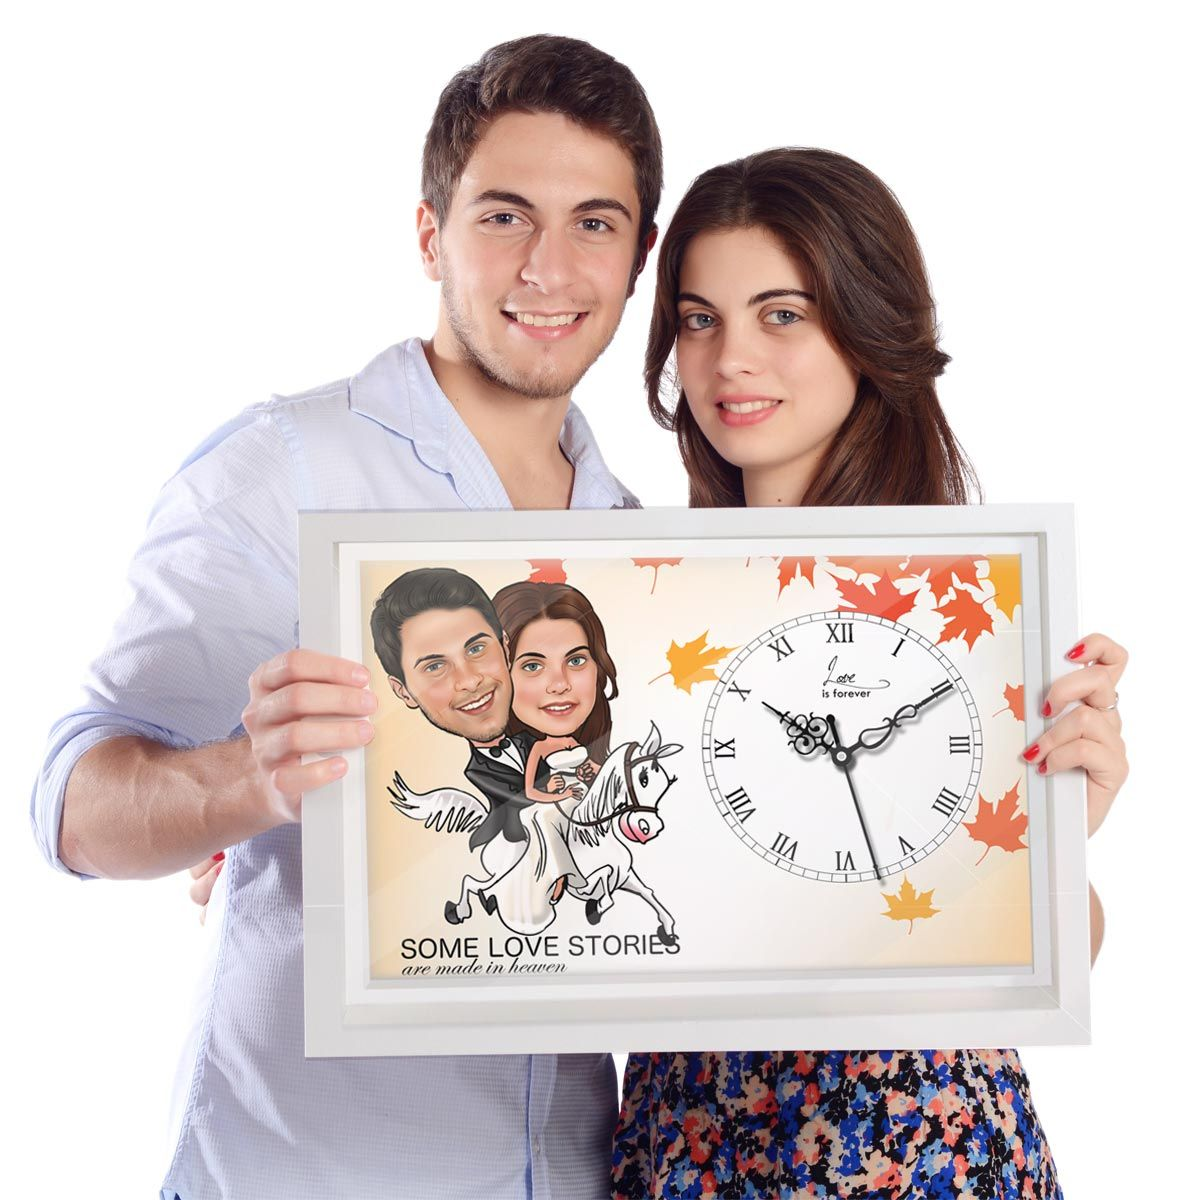 Customized gifts for boyfriend indian lamoureph blog for Best gifts for family